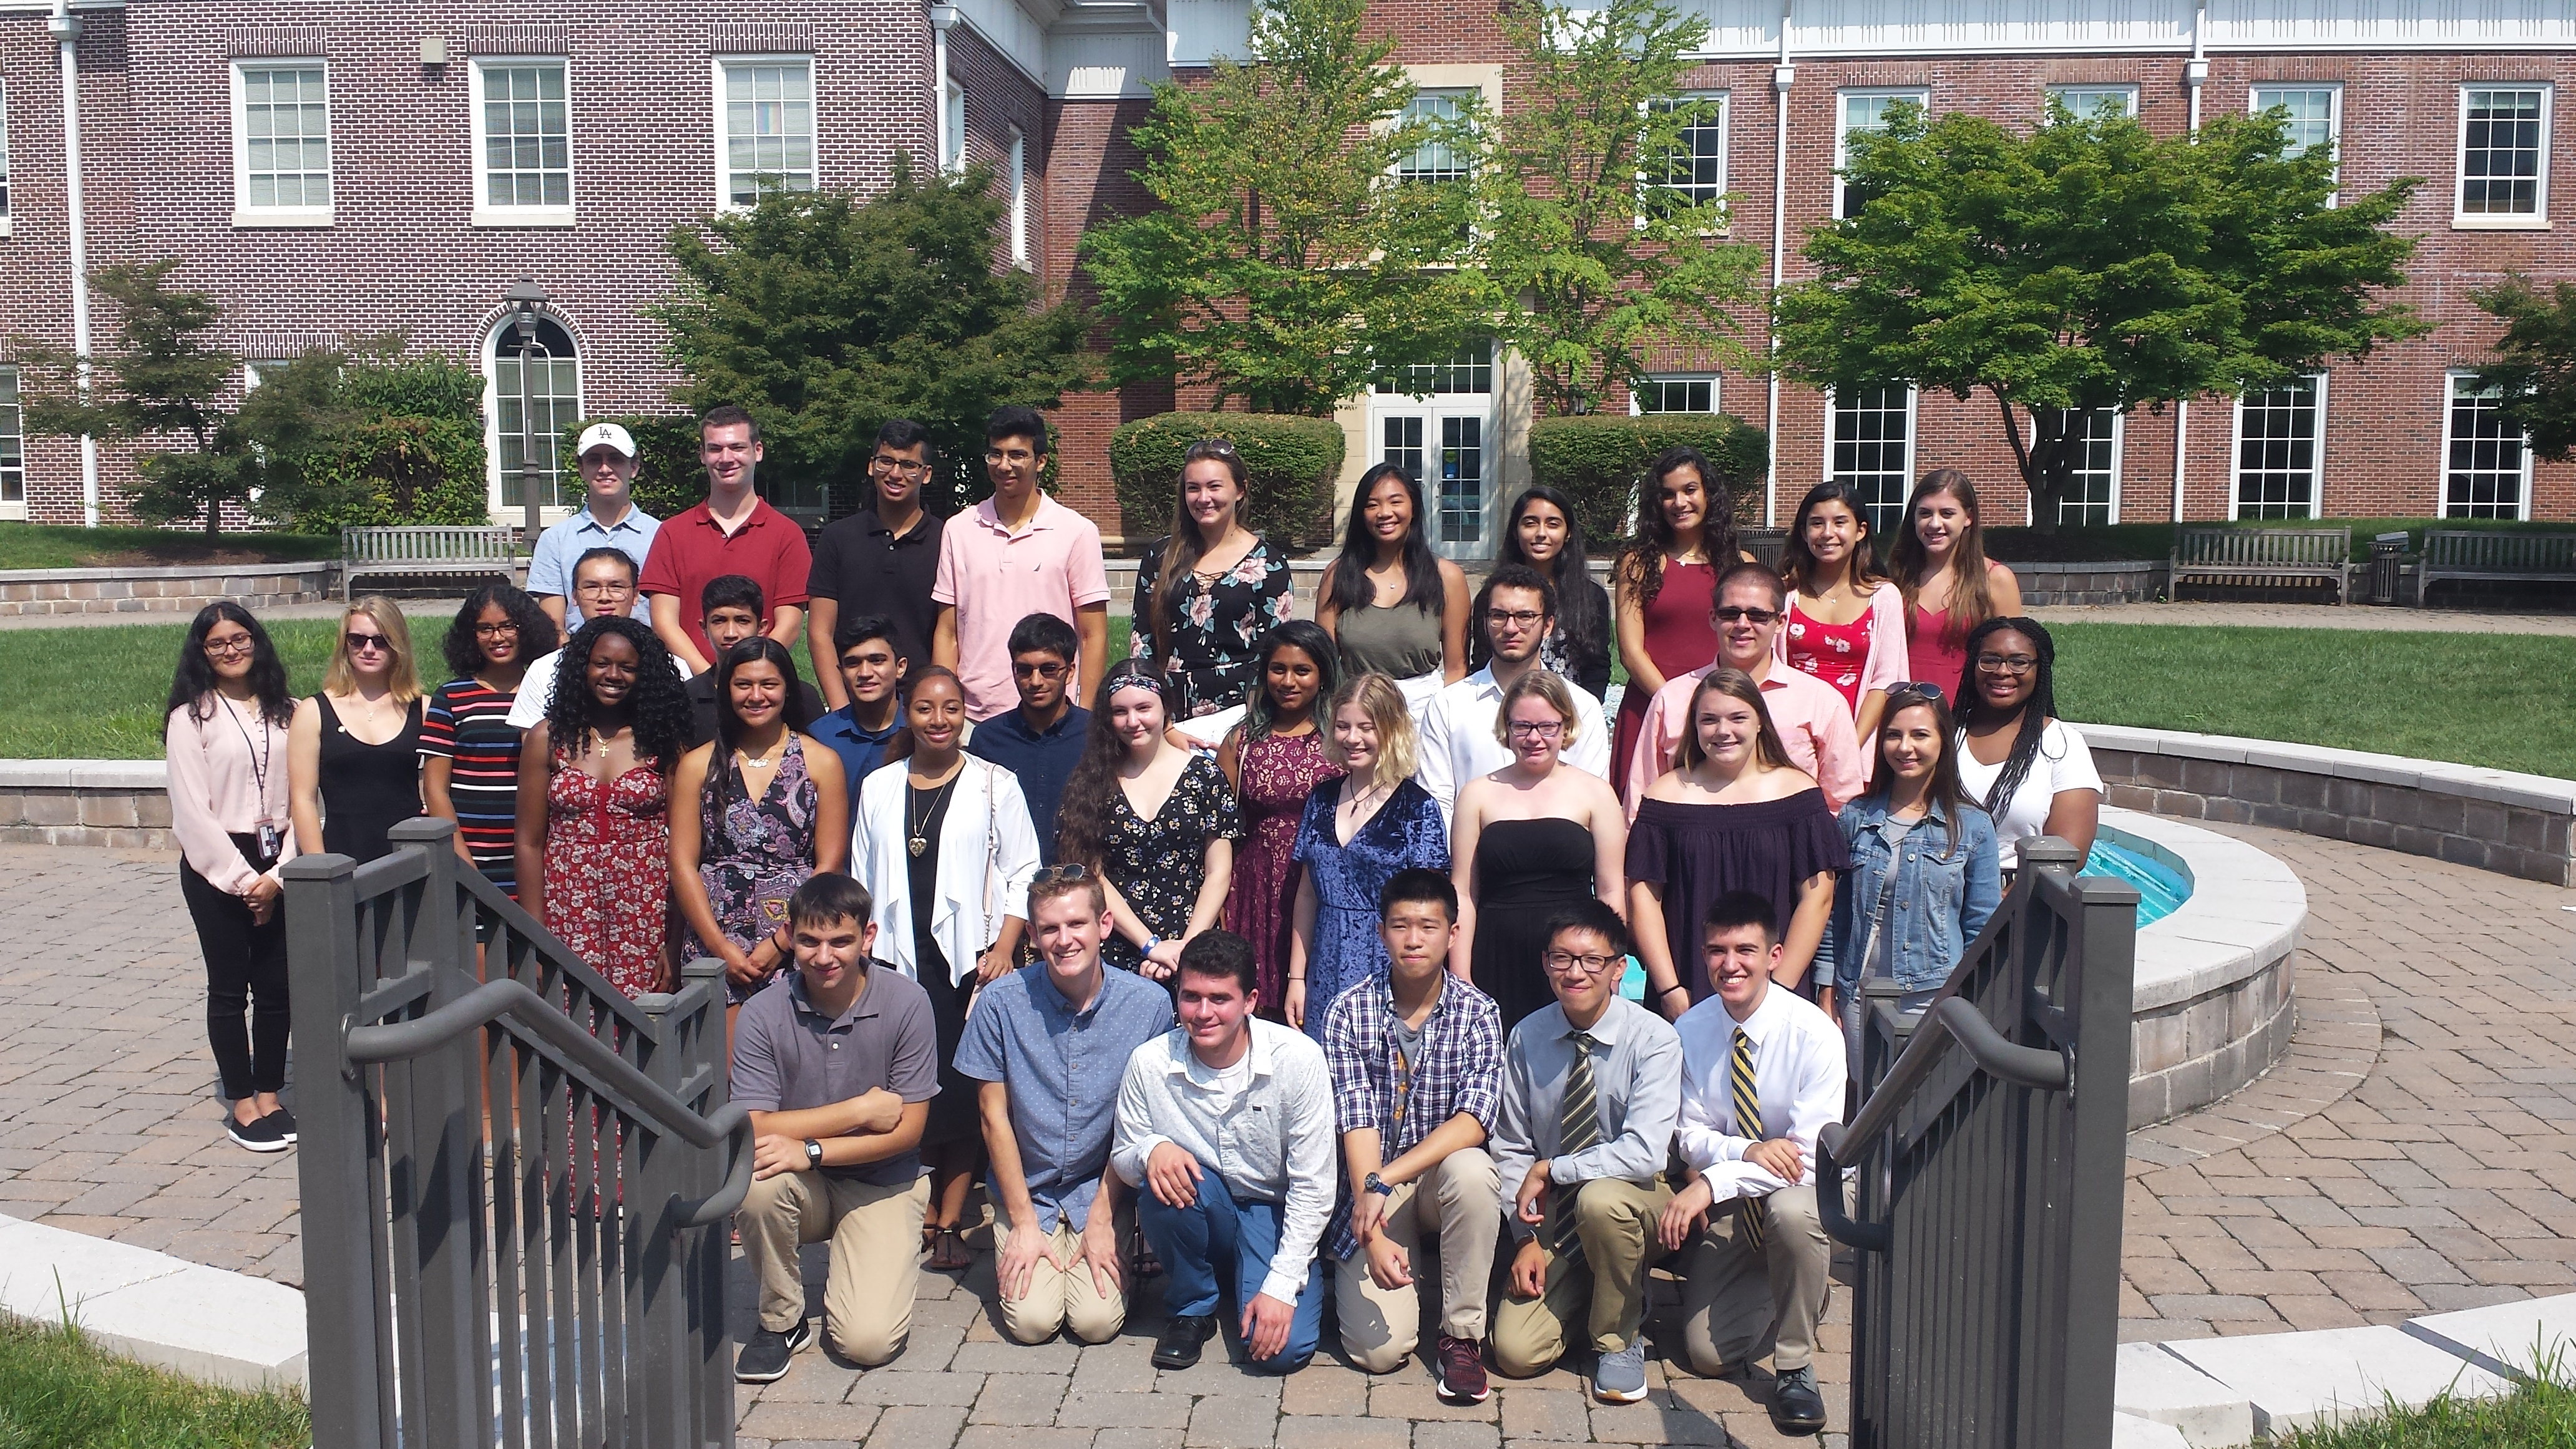 Tcnj Academic Calendar 2022.Welcome Class Of 2022 Chemistry